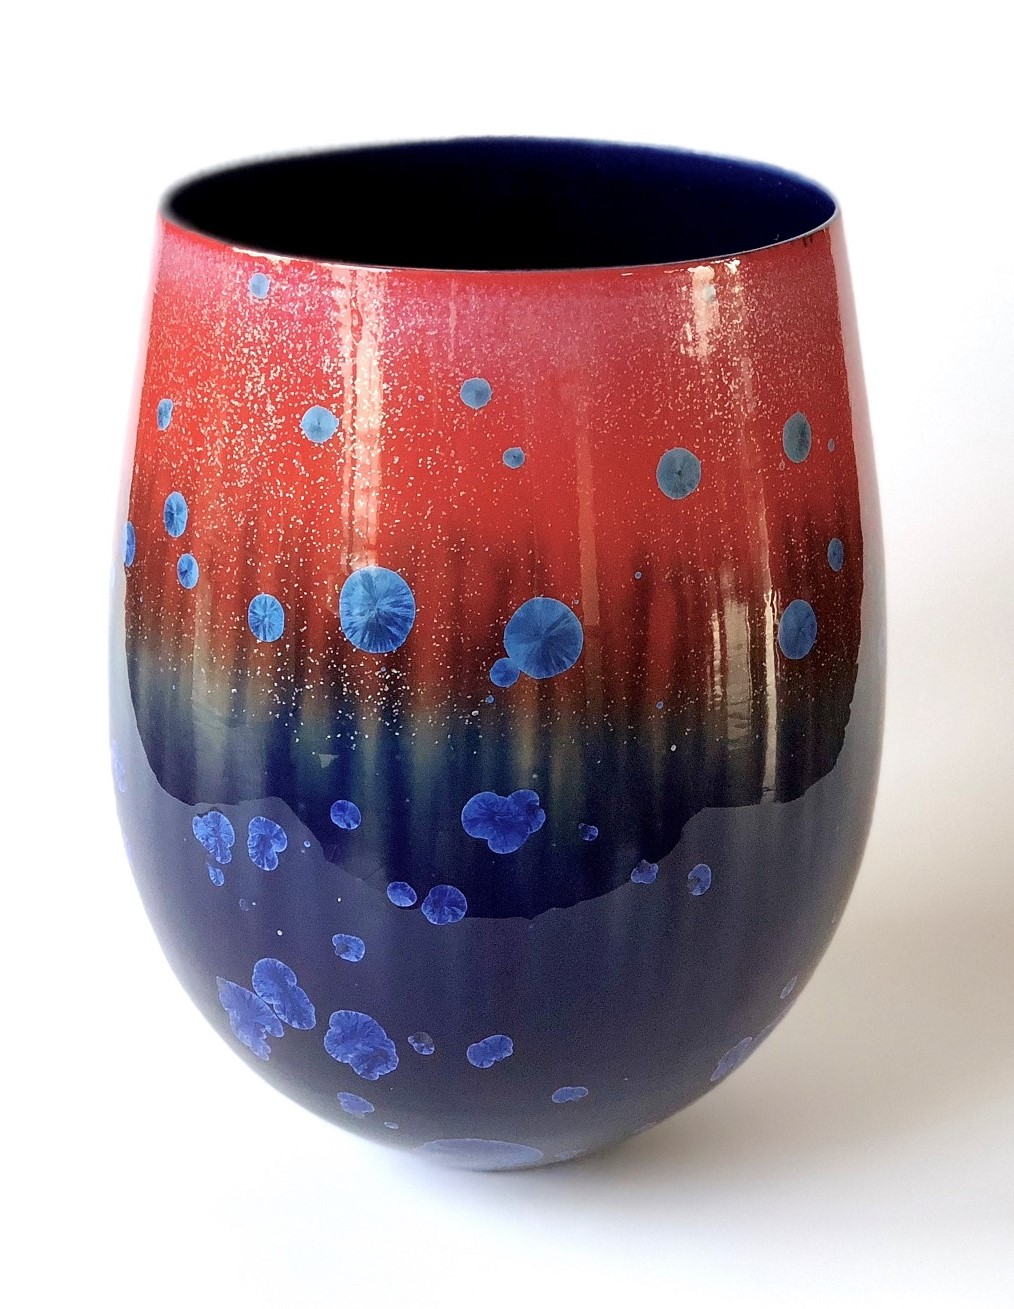 Ted Secombe 29.  Pod Bowl - Kimberley Sunrise , 2018, porcelain, gloss crystalline cobalt blue and red glazes, H32 x W23cm